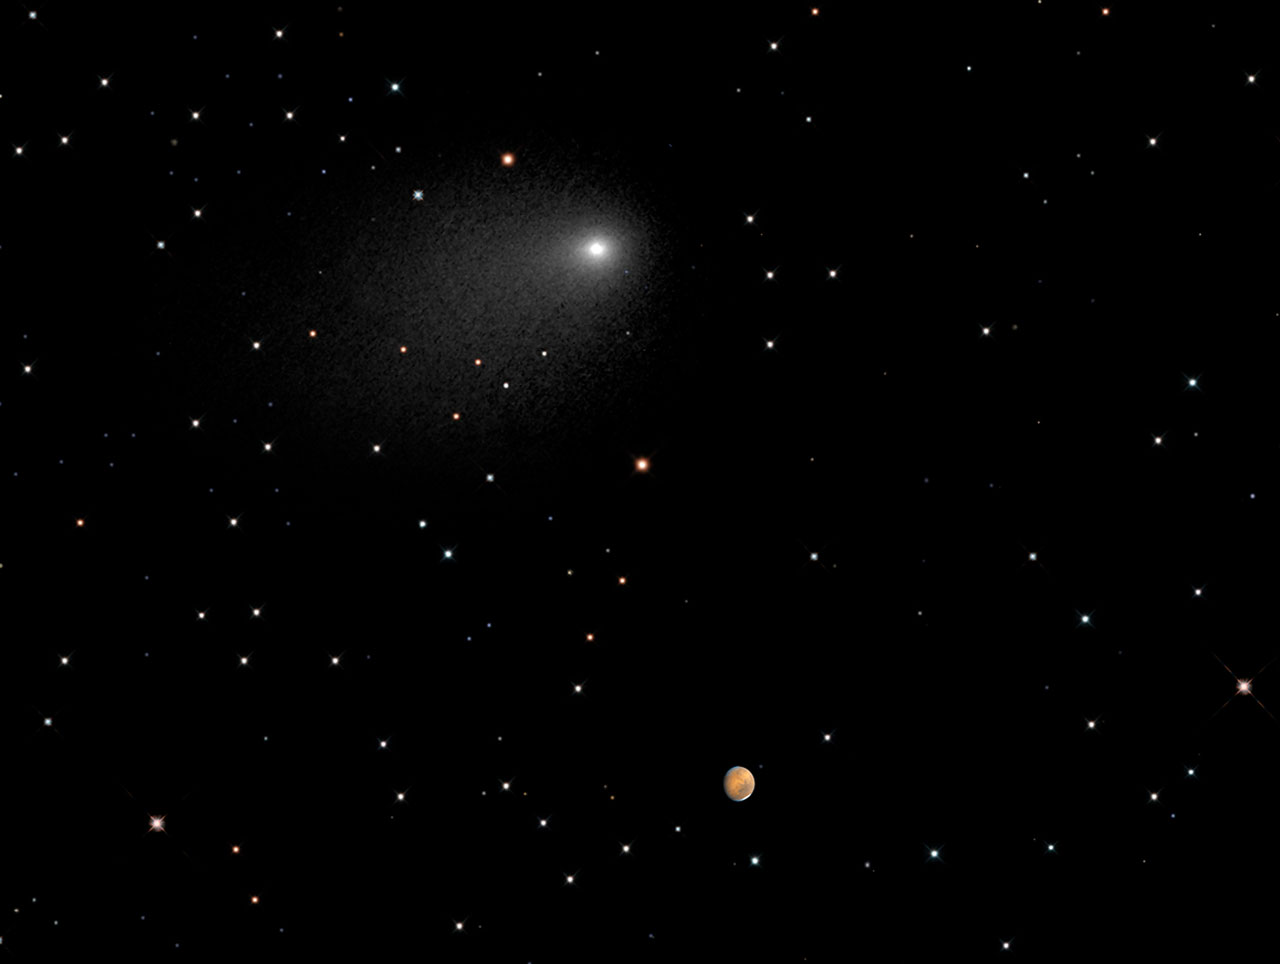 Comet and Mars in the same image.